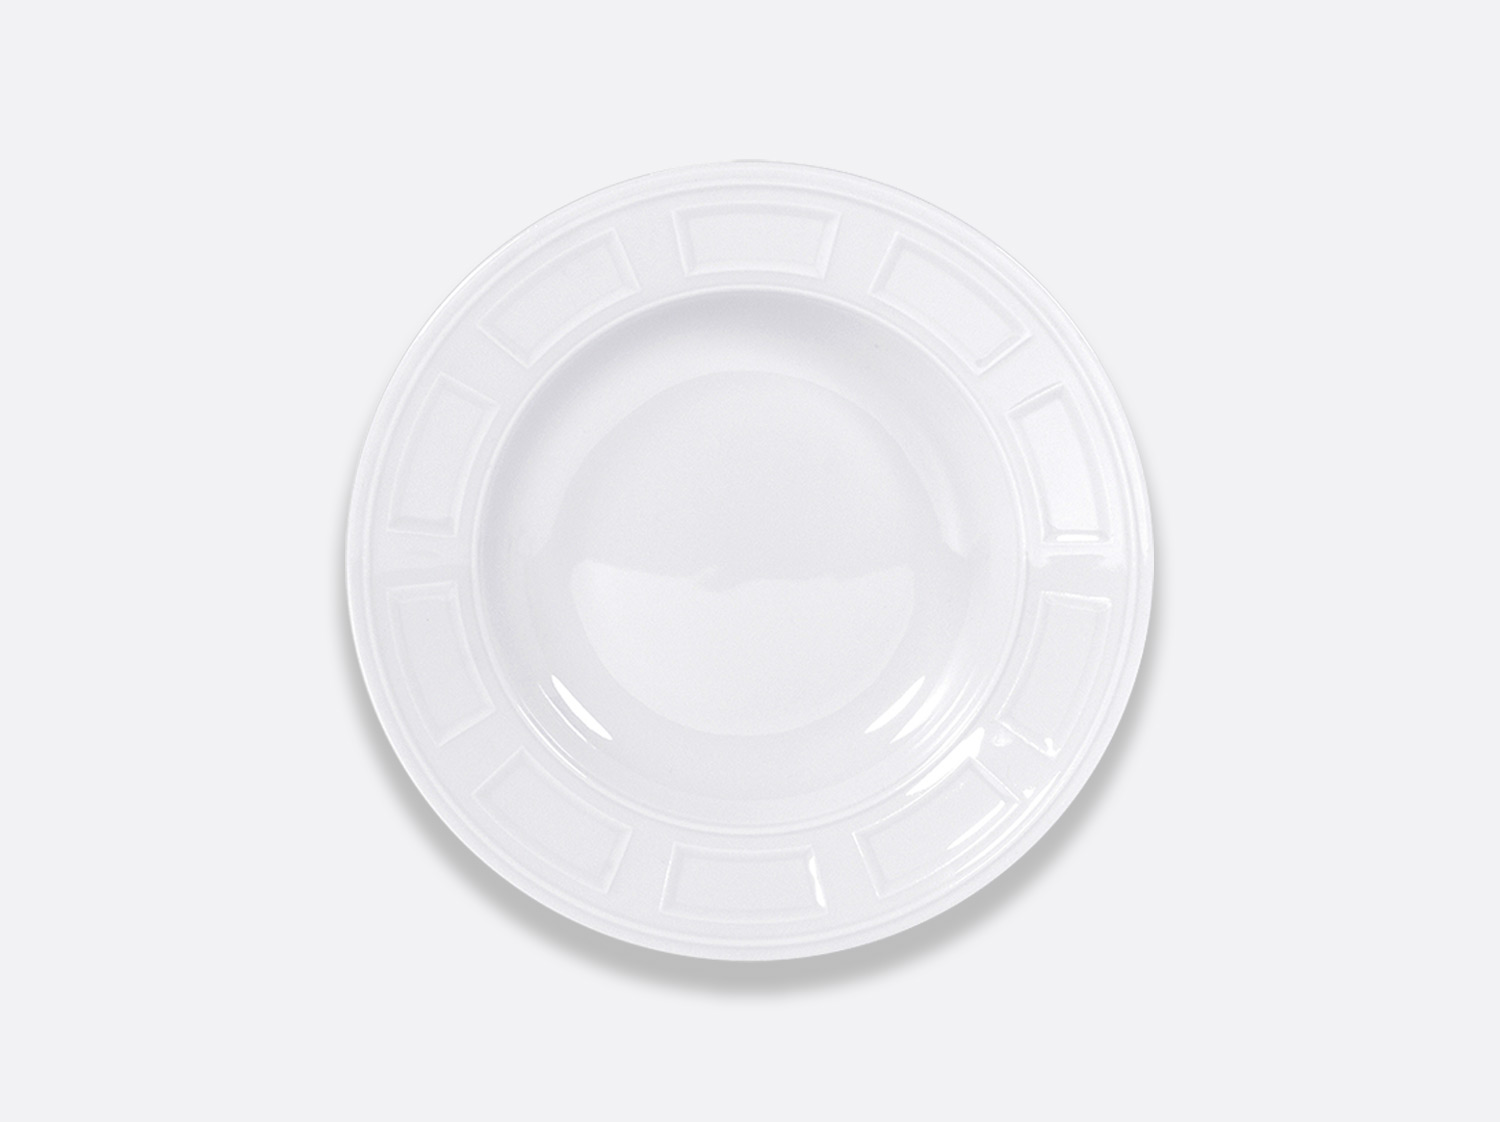 China Rim soup 22,5 cm of the collection Naxos | Bernardaud